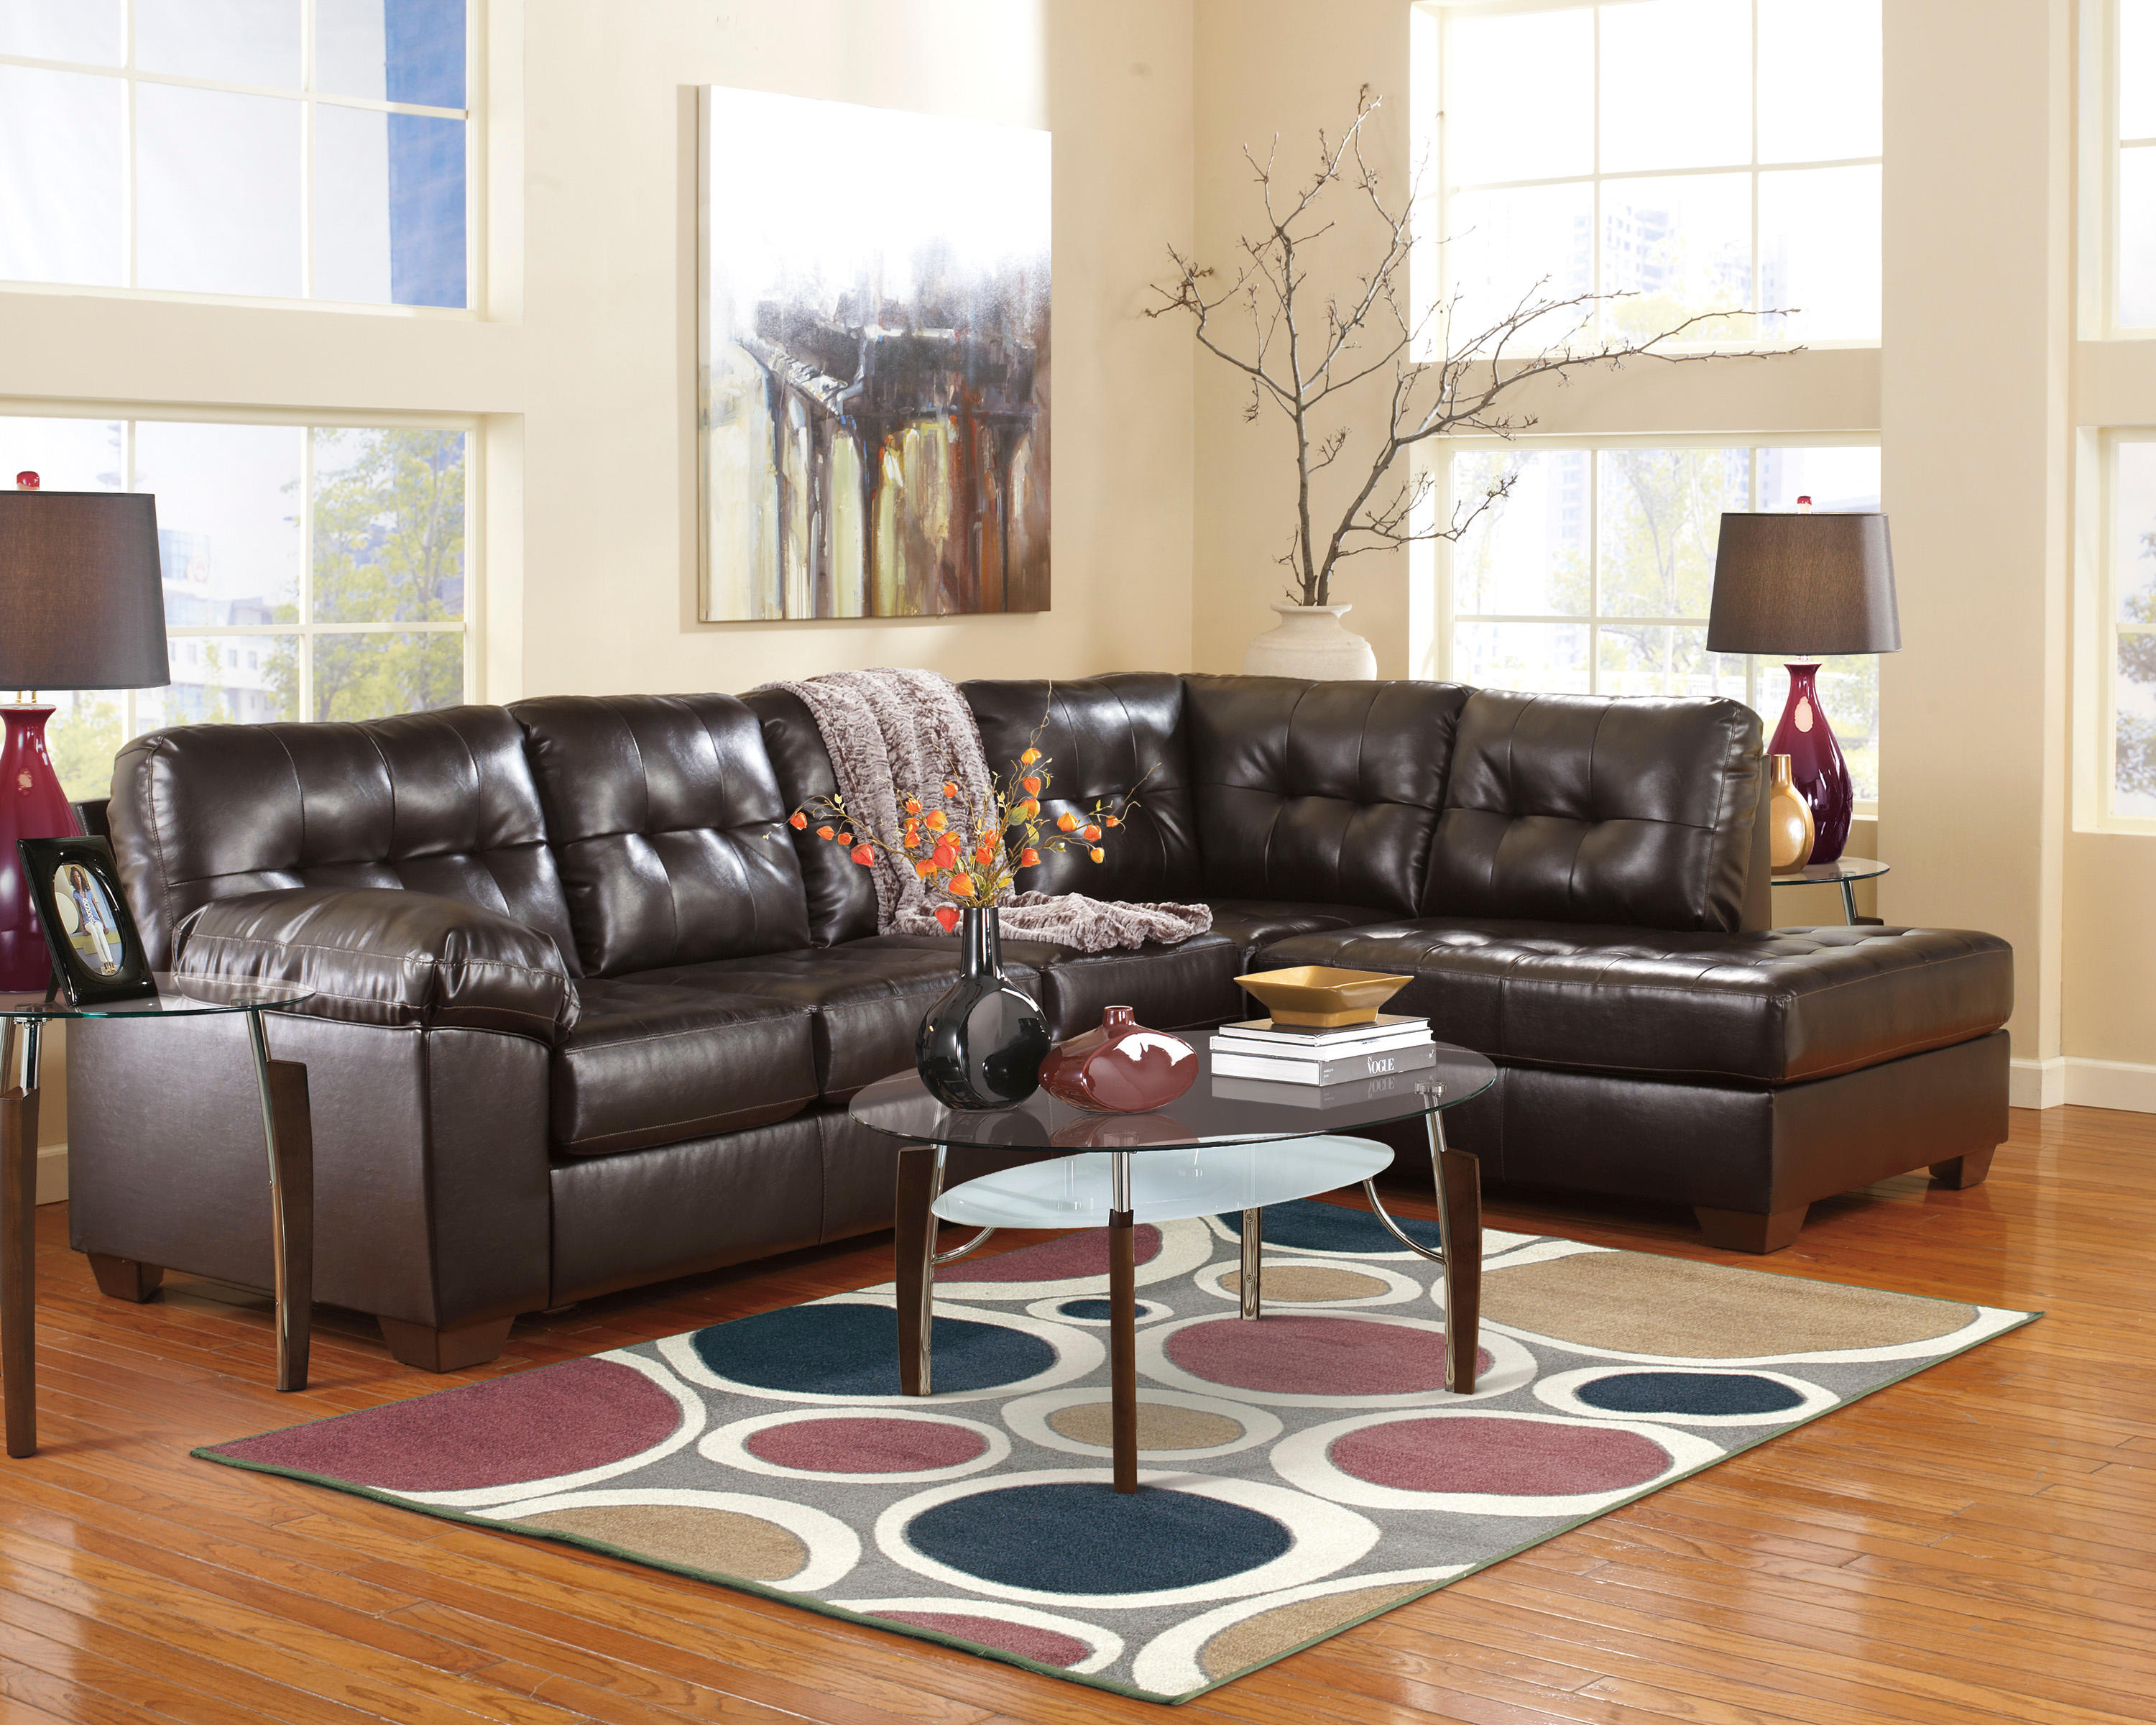 Mattress and Furniture Discount Warehouse image 10